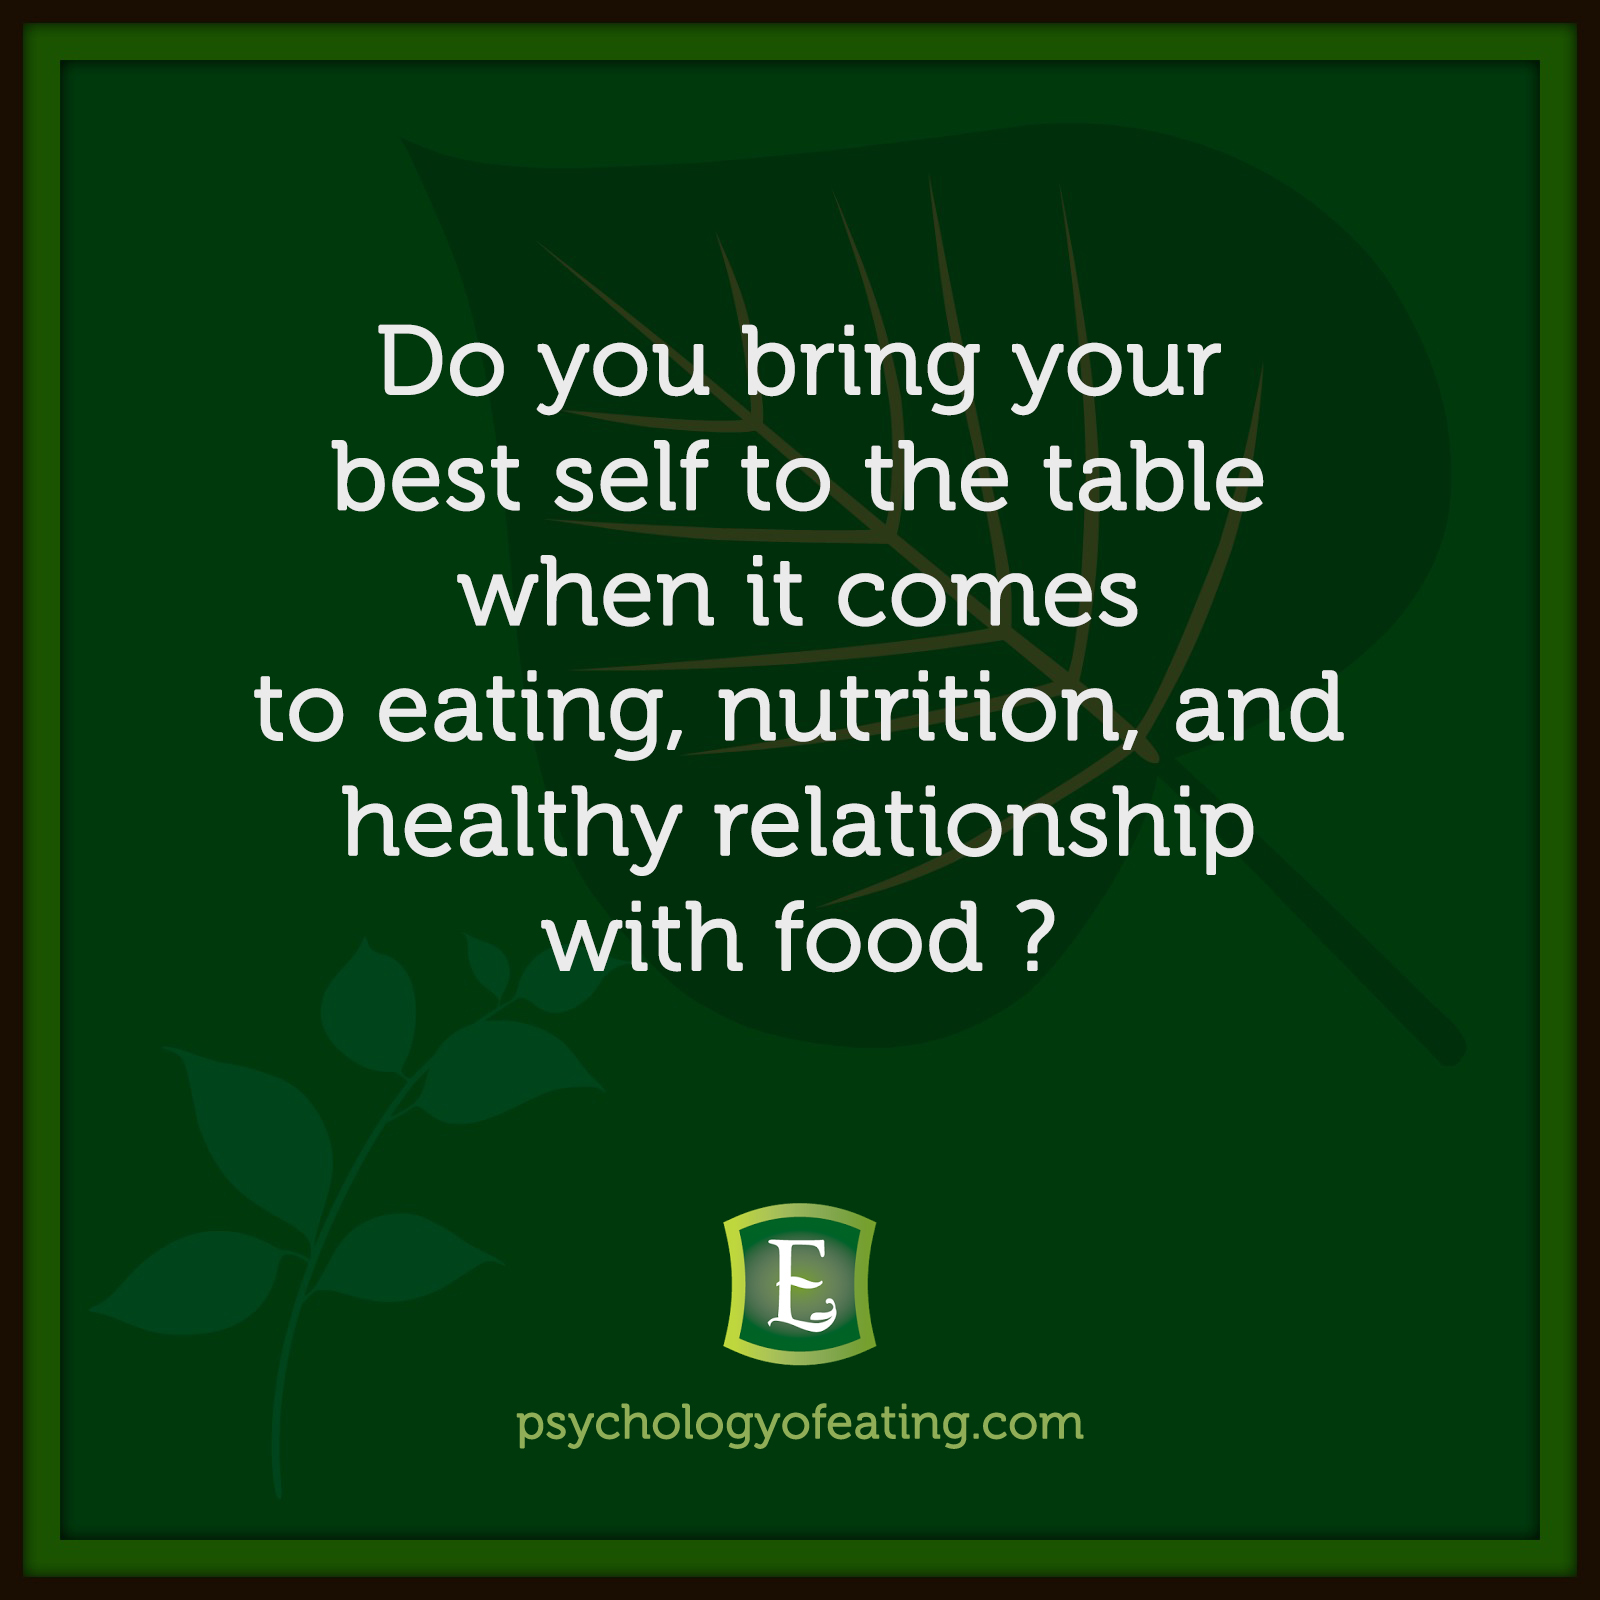 Do you bring your best self to the table when it comes to eating, nutrition, and healthy relationship with food? #health #nutrition #eatingpsychology #IPE